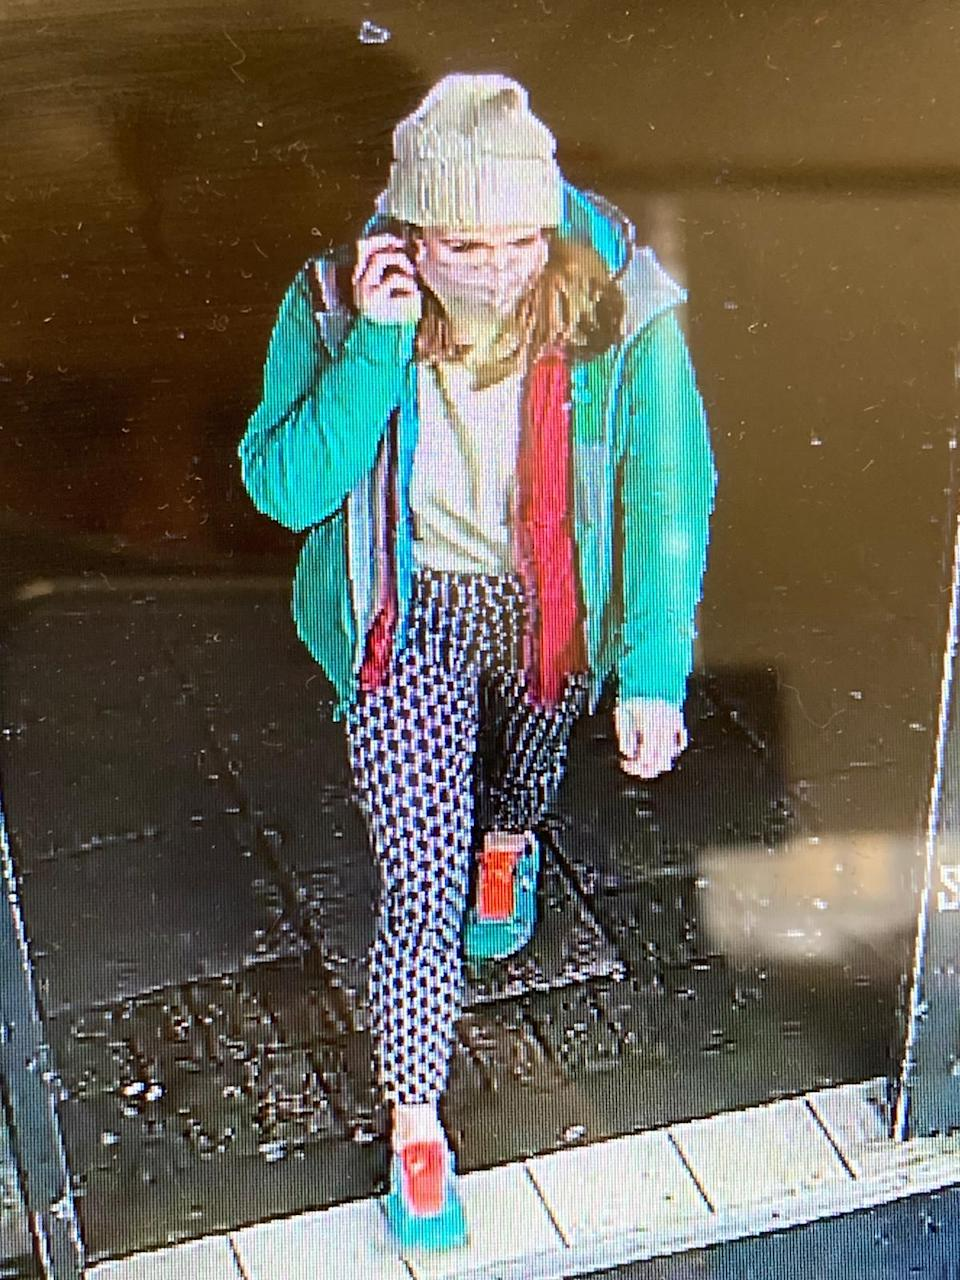 A CCTV image of Sarah Everard on the night she went missing. (Photo: Metropolitan Police)